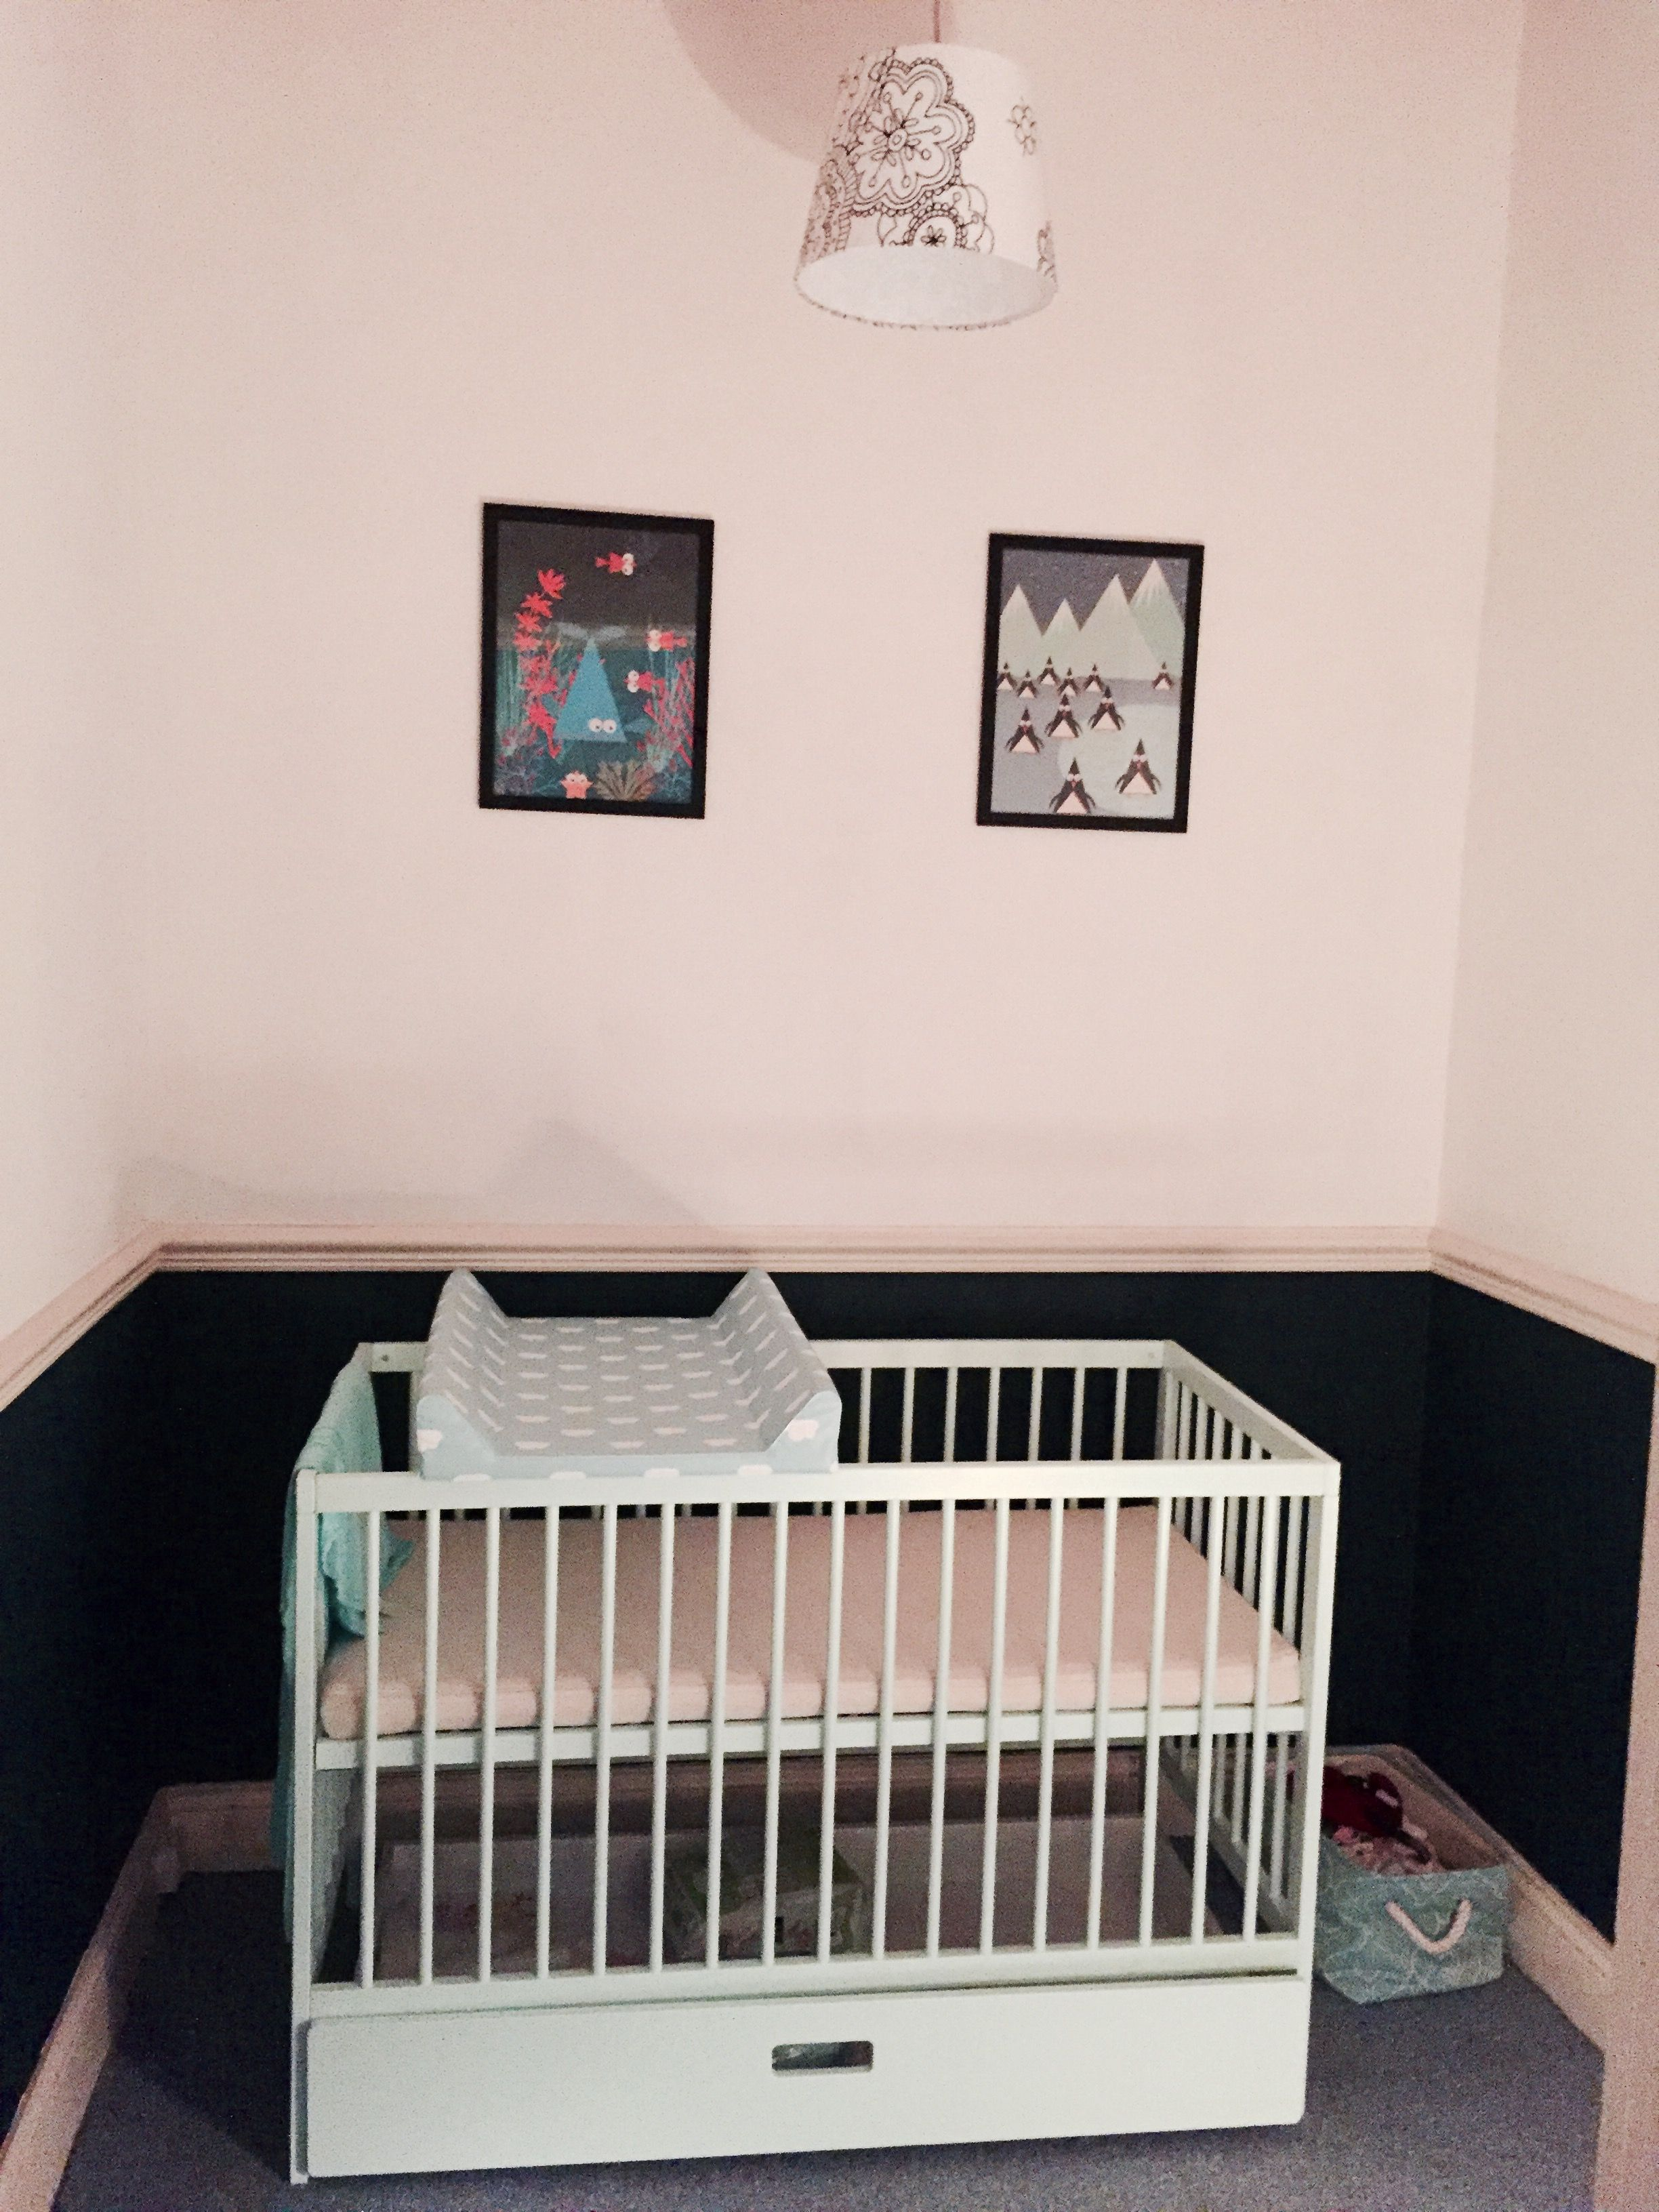 Baby nursery, box room makeover, no windows. Walls painted in